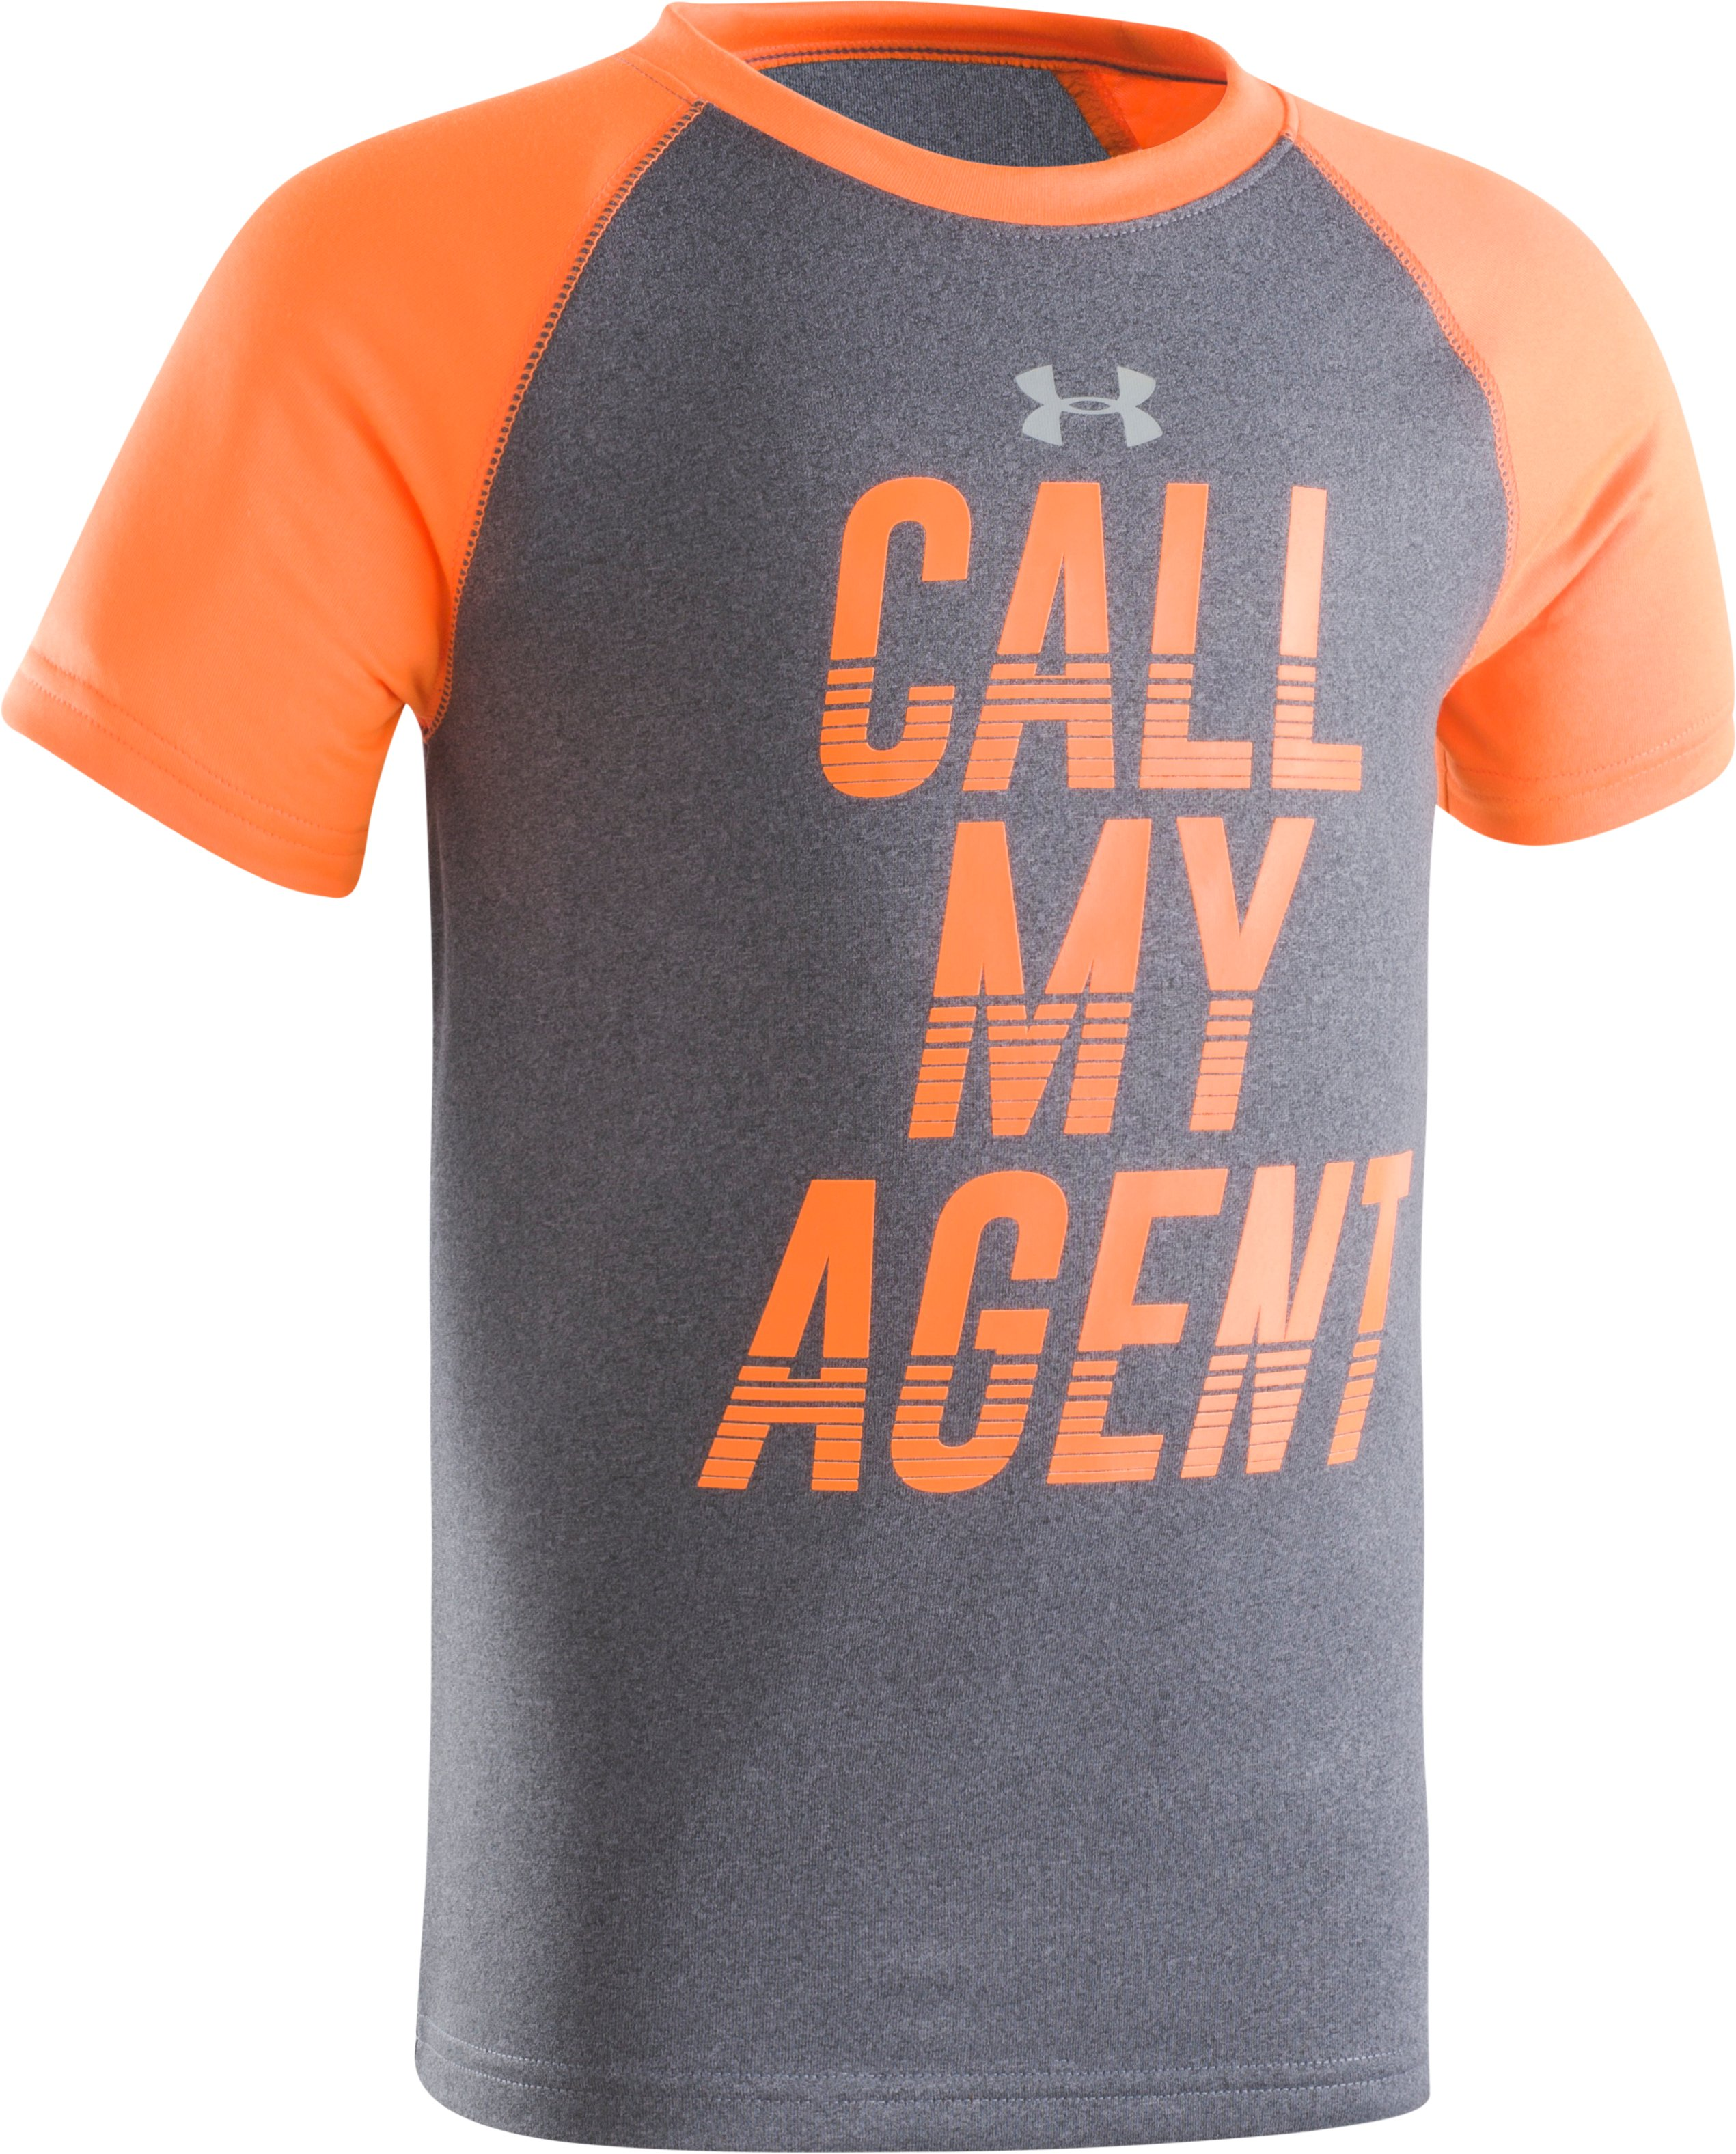 Boys' Pre-School UA Call My Agent Short Sleeve Shirt, Carbon Heather